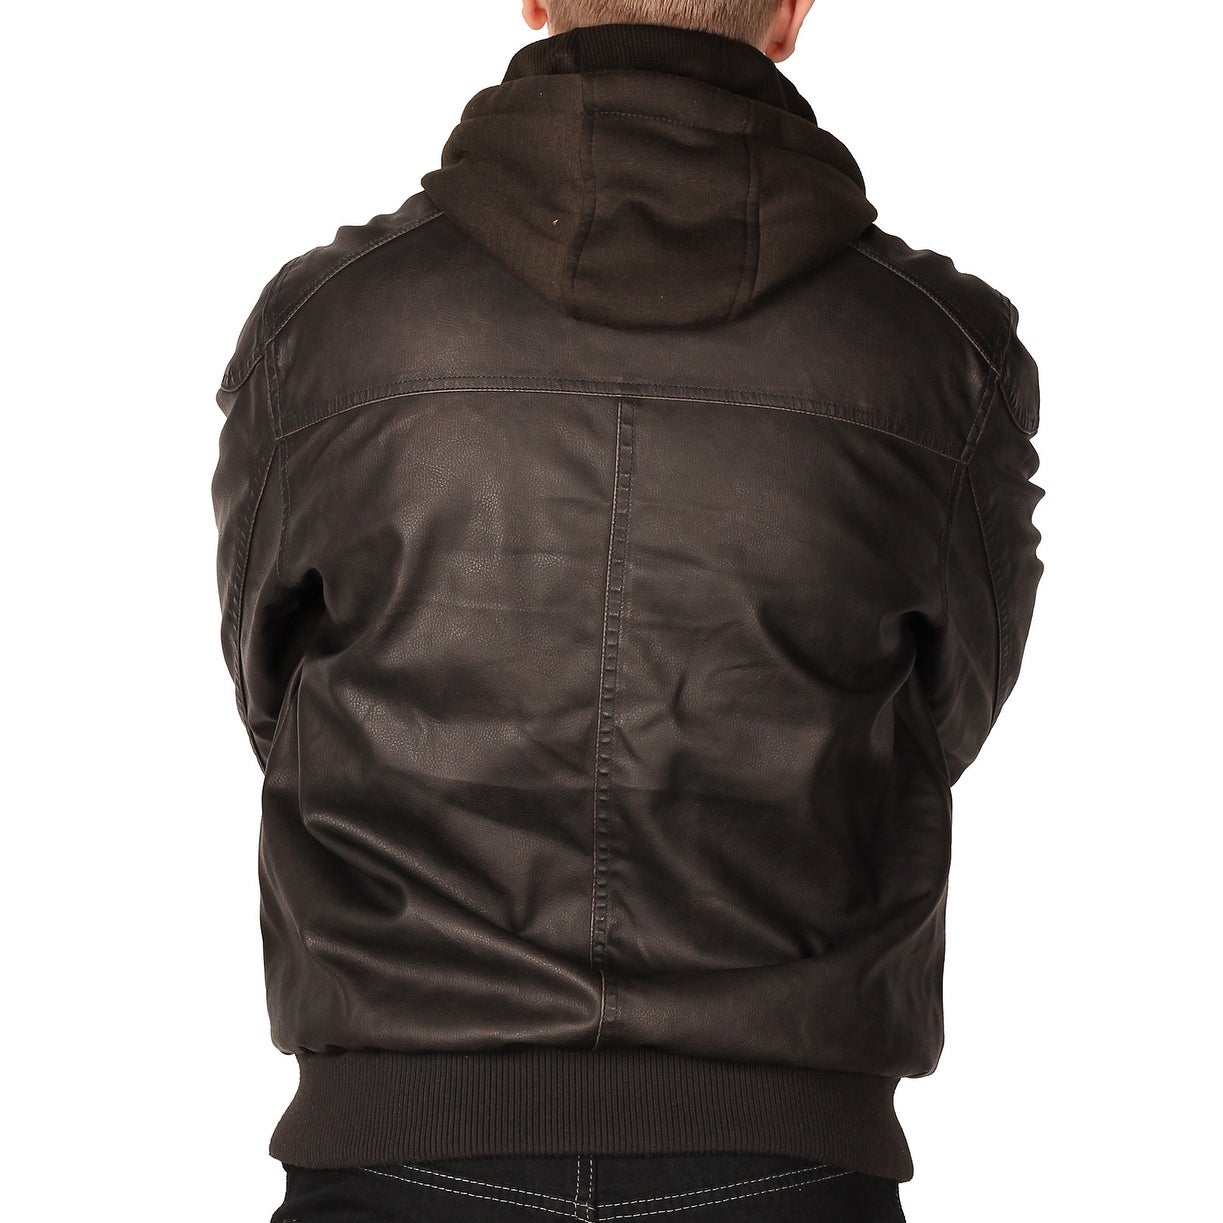 871f3e95687 Mens Leather Bomber Jacket With Hood